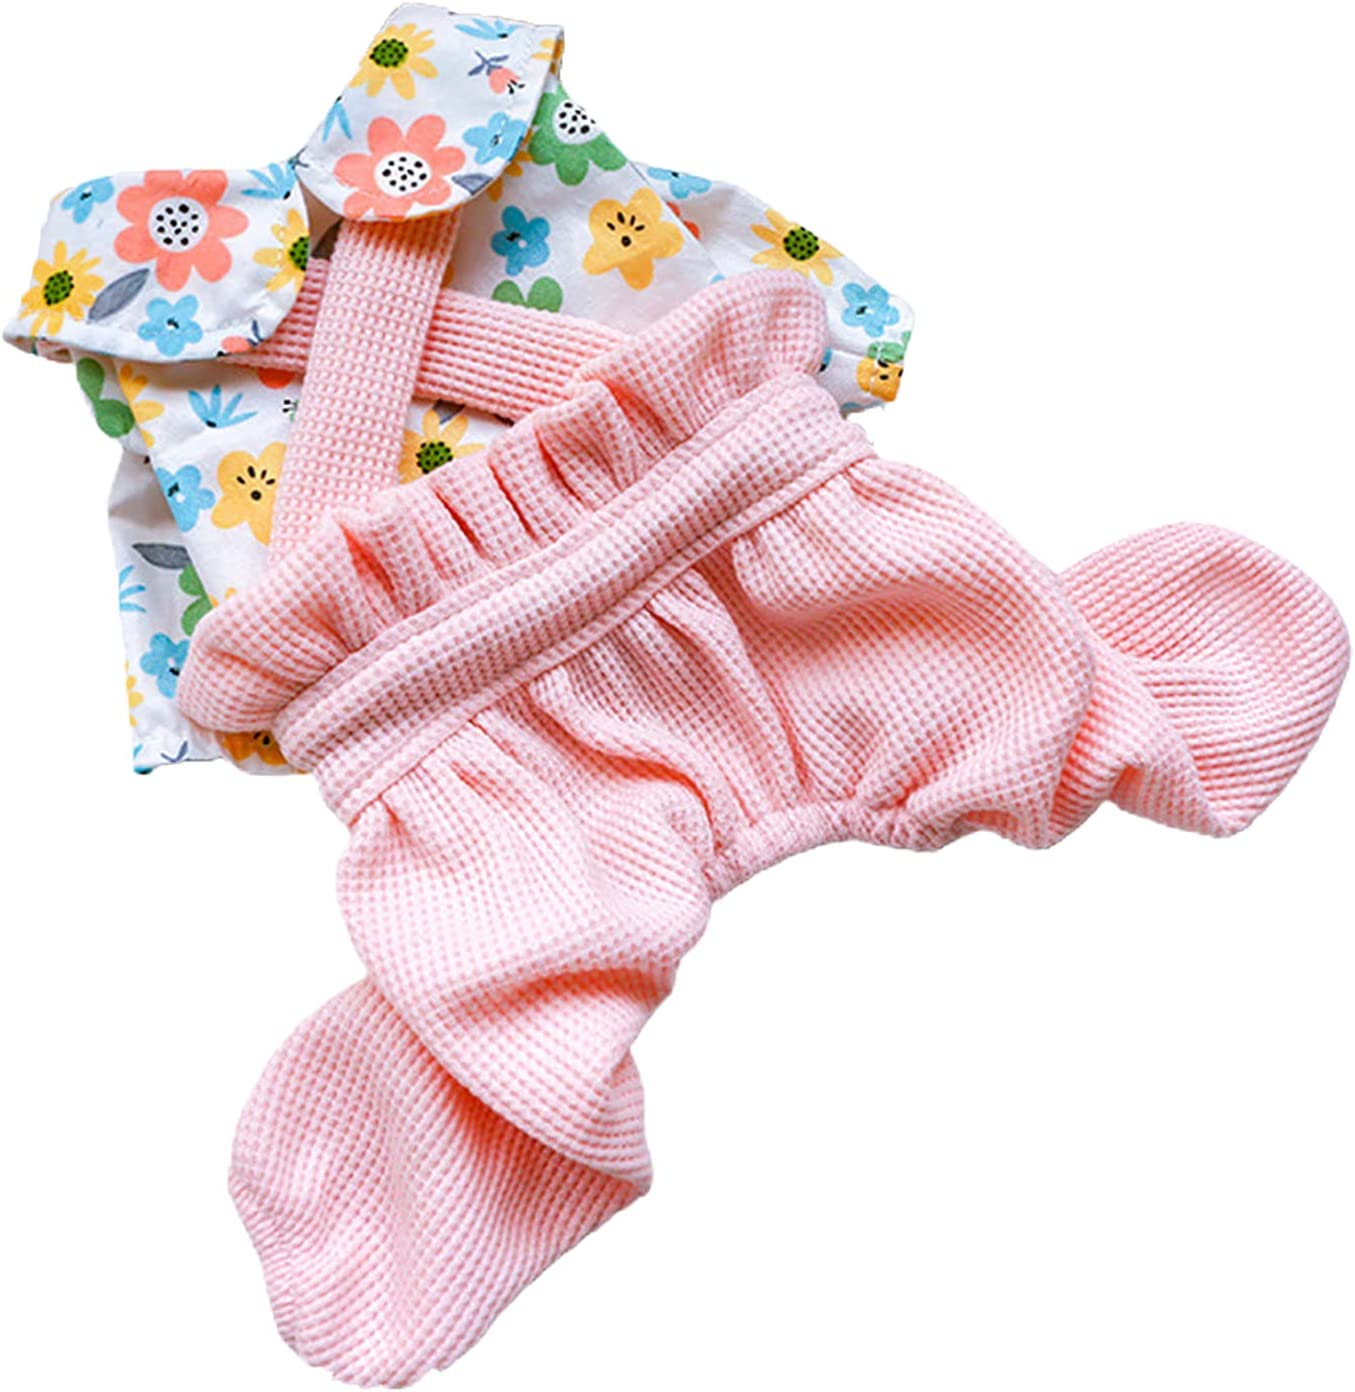 hbz11hl Dog Clothes Now free shipping for Small Dogs Recommended Dress Pet Girl Boy Birthday